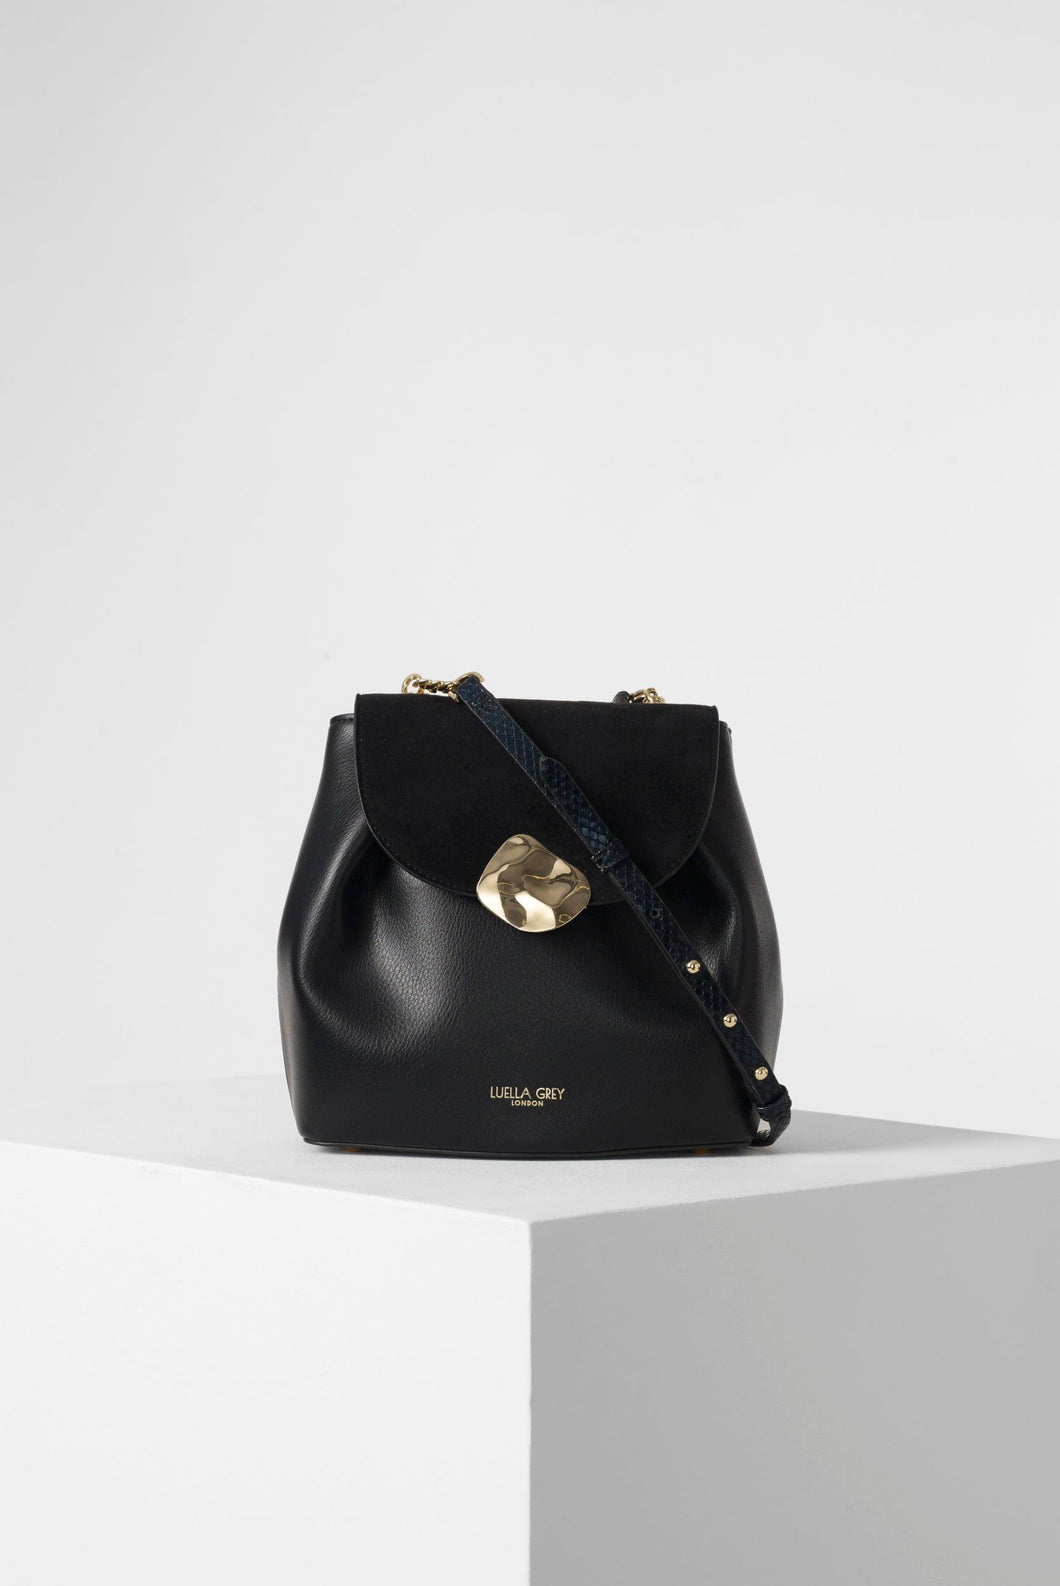 Cleo Black Small Cross Body Handbag Front View